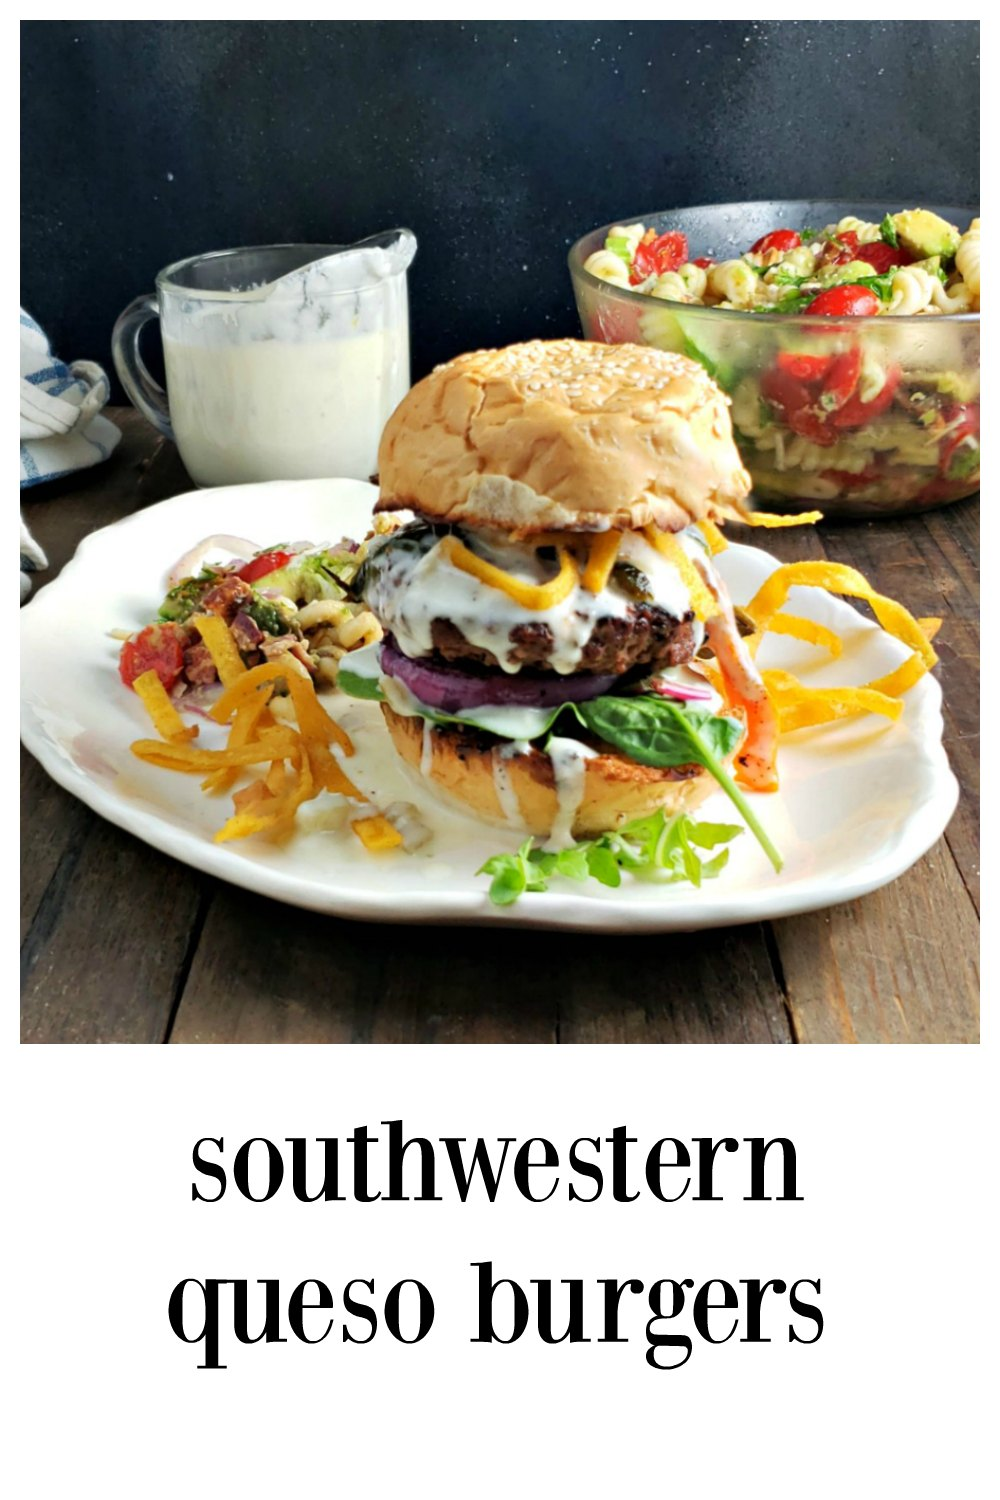 Southwestern Queso Burgers - The Ultimate Gourmet Burger! The burger itself is fabulous but topped with roasted peppers, queso and tortilla tangles its insane! Make all homemade or sub in grocery store queso or peppers to get it on the table quick. #GourmetBurger #QuesoBurger #SouthwesternBurger #MexicanHamburger #GourmetHamburger #SouthwesternHamburger #FathersDay